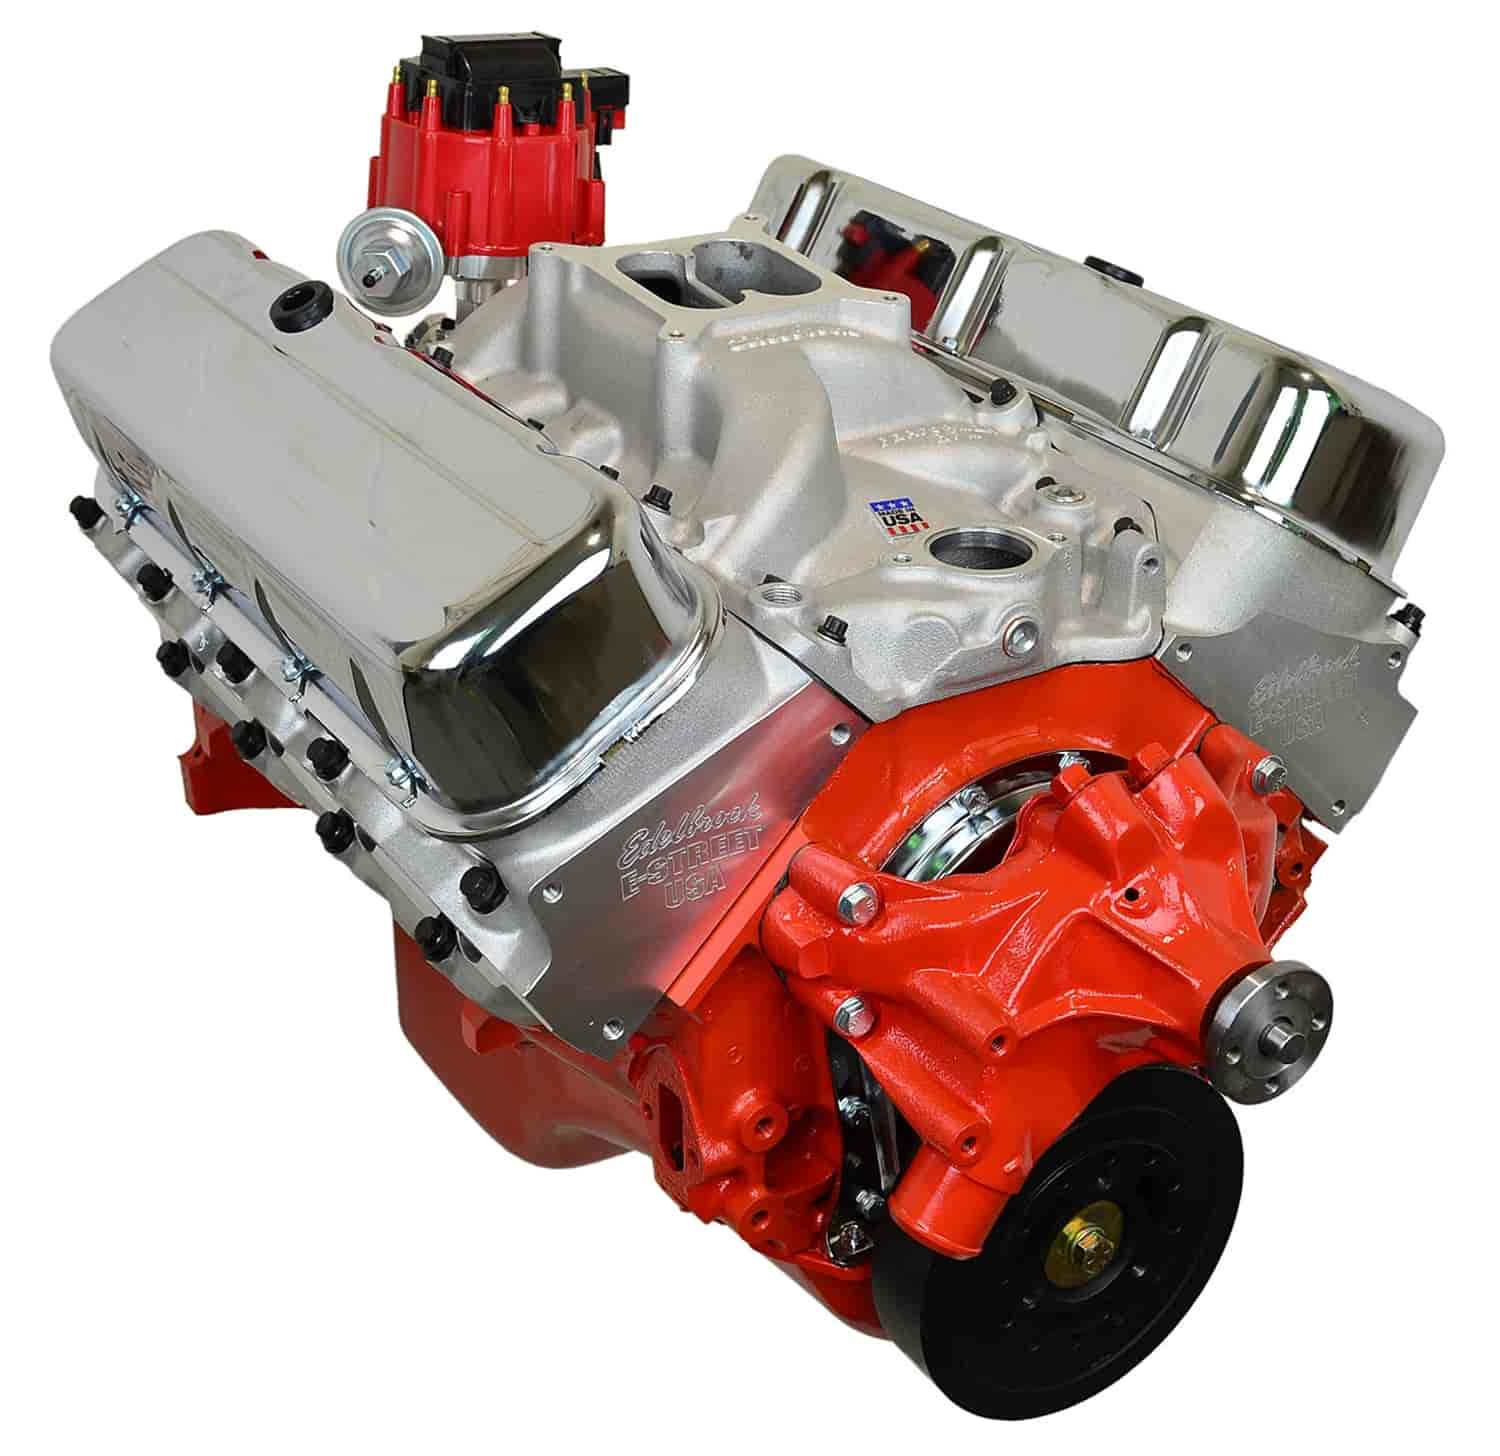 ATK Engines High Performance Crate Engine Big Block Chevy 454ci / 525HP /  550TQ